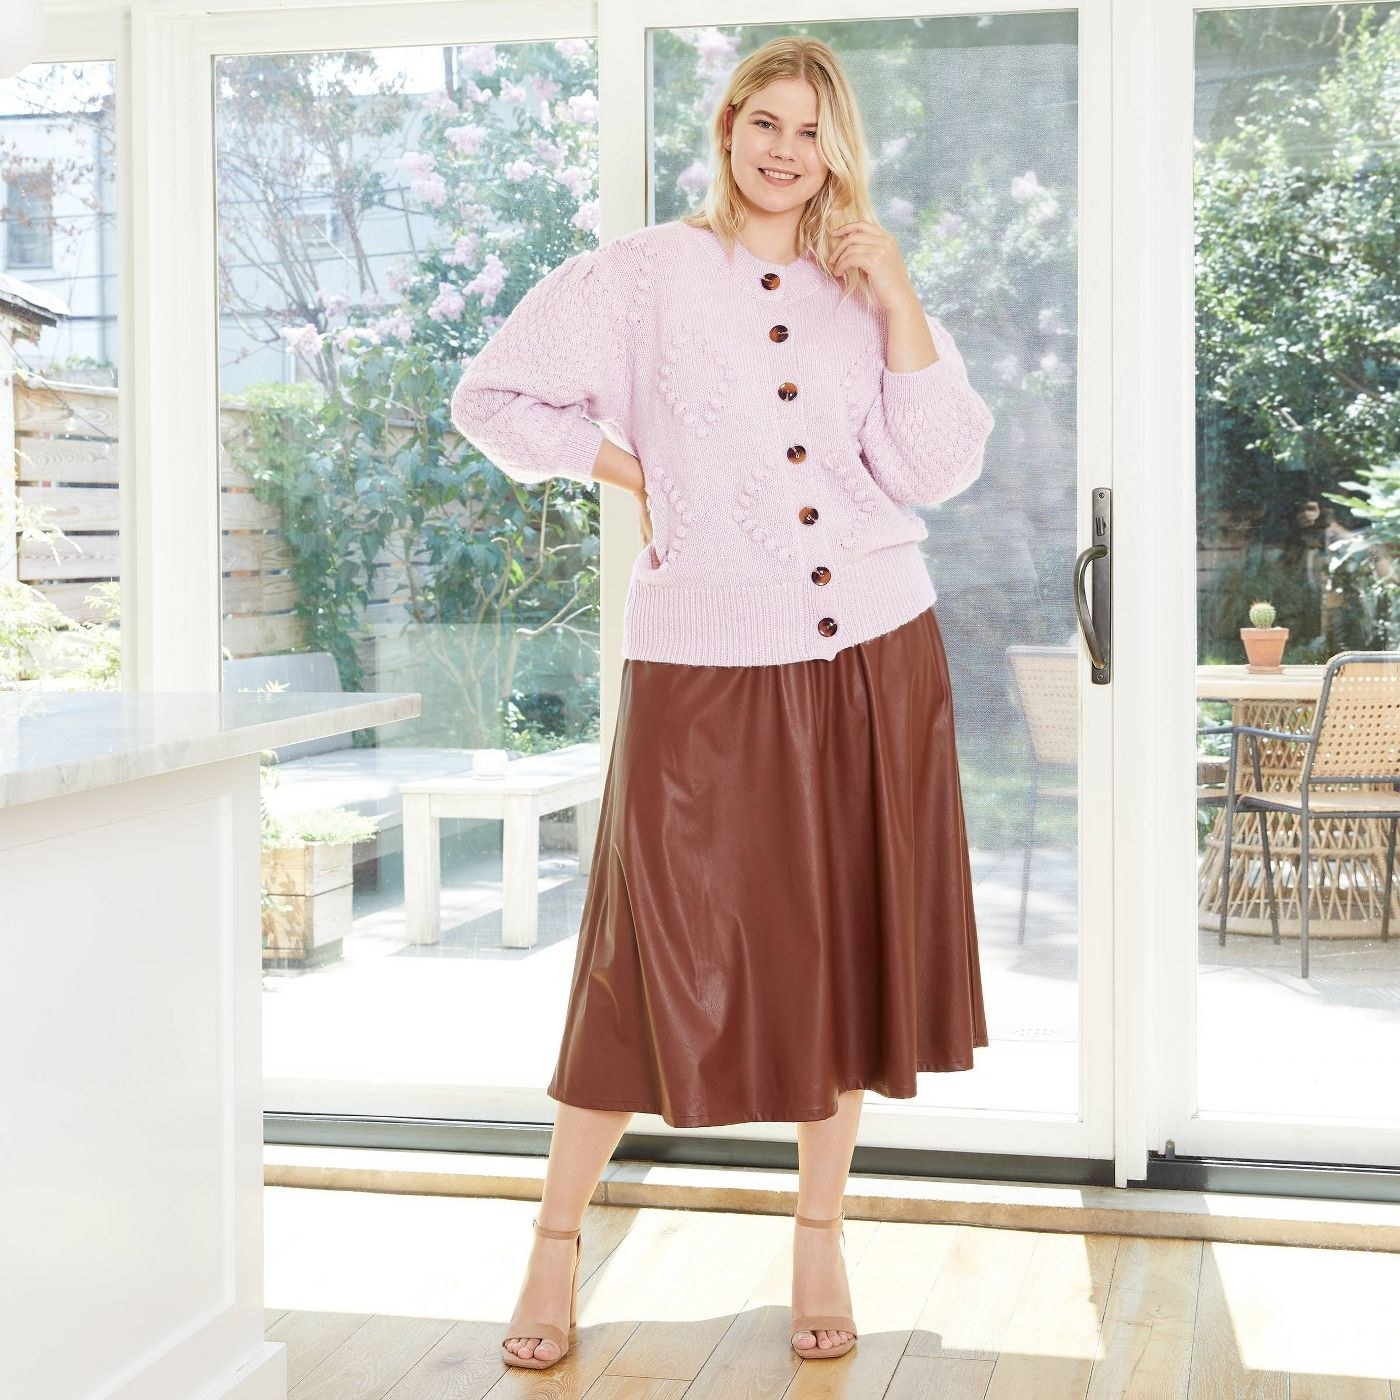 Model in light purple cardigan with brown buttons